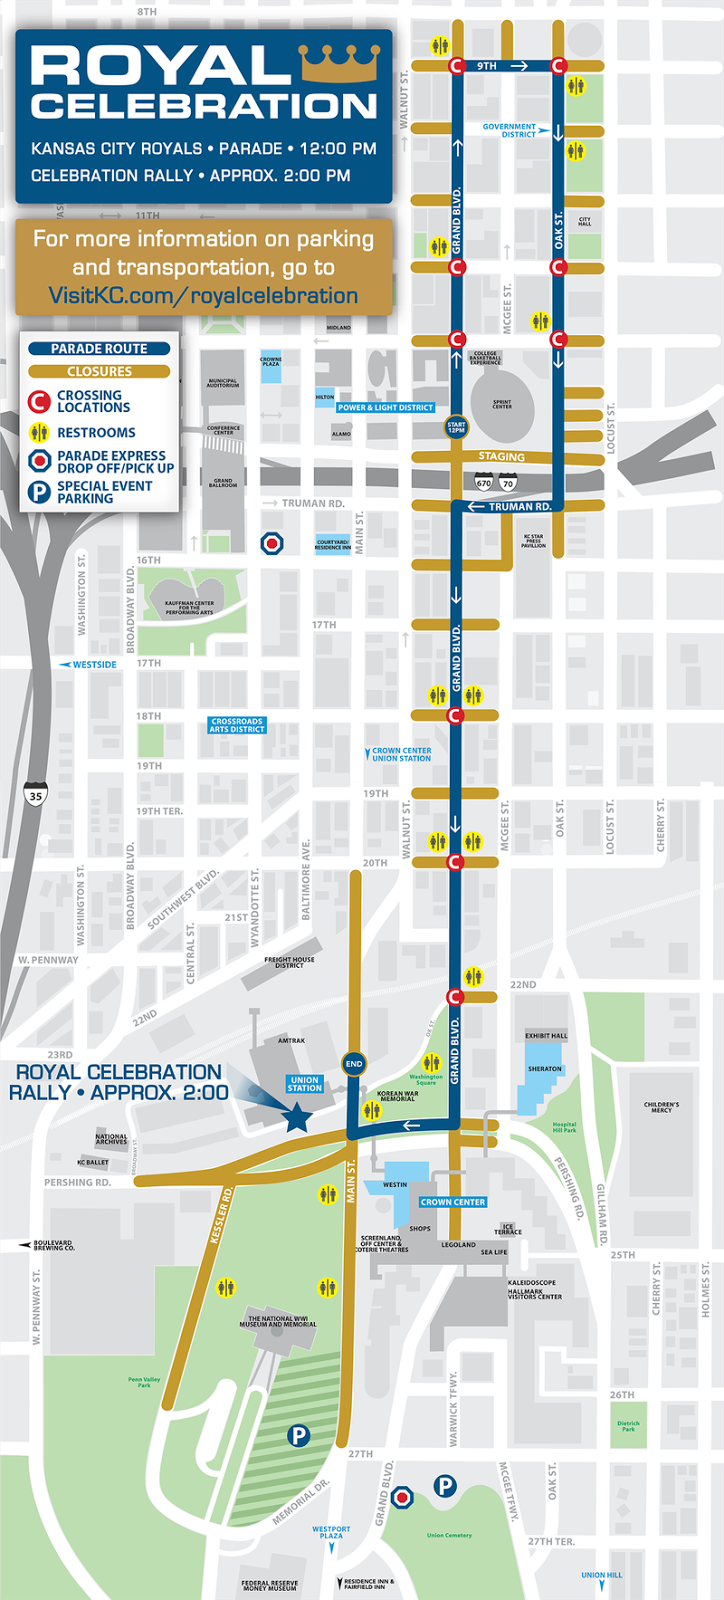 Kansas Transportation Royals Celebration Schedule and Map